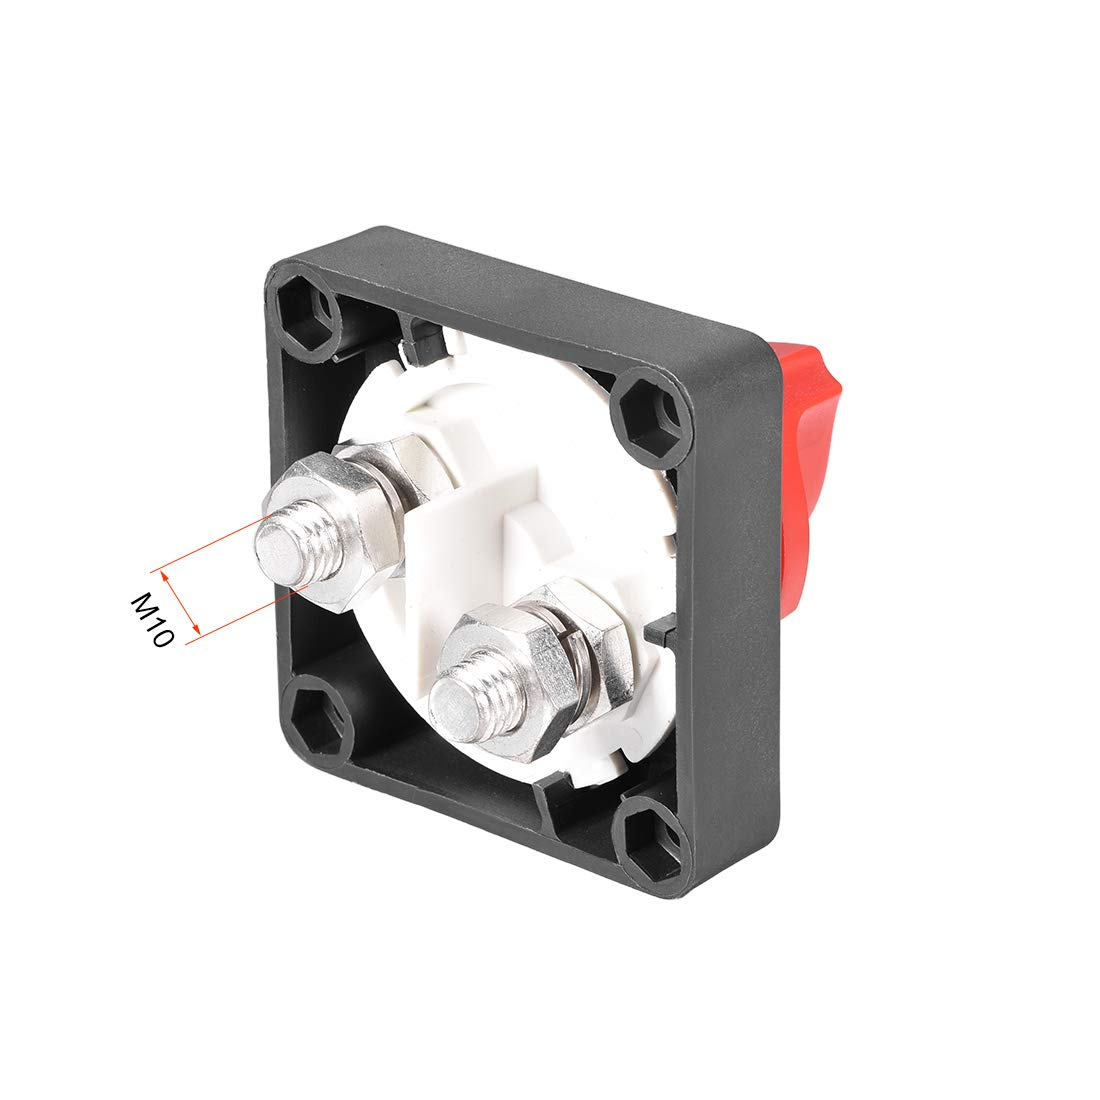 uxcell/® Rotary Battery Disconnect Switch Isolator Cut OFF Battery Power Switch DC 12-24V//400A ON//OFF for Marine Car Boat RV ATV Vehicles W Cement Resistance